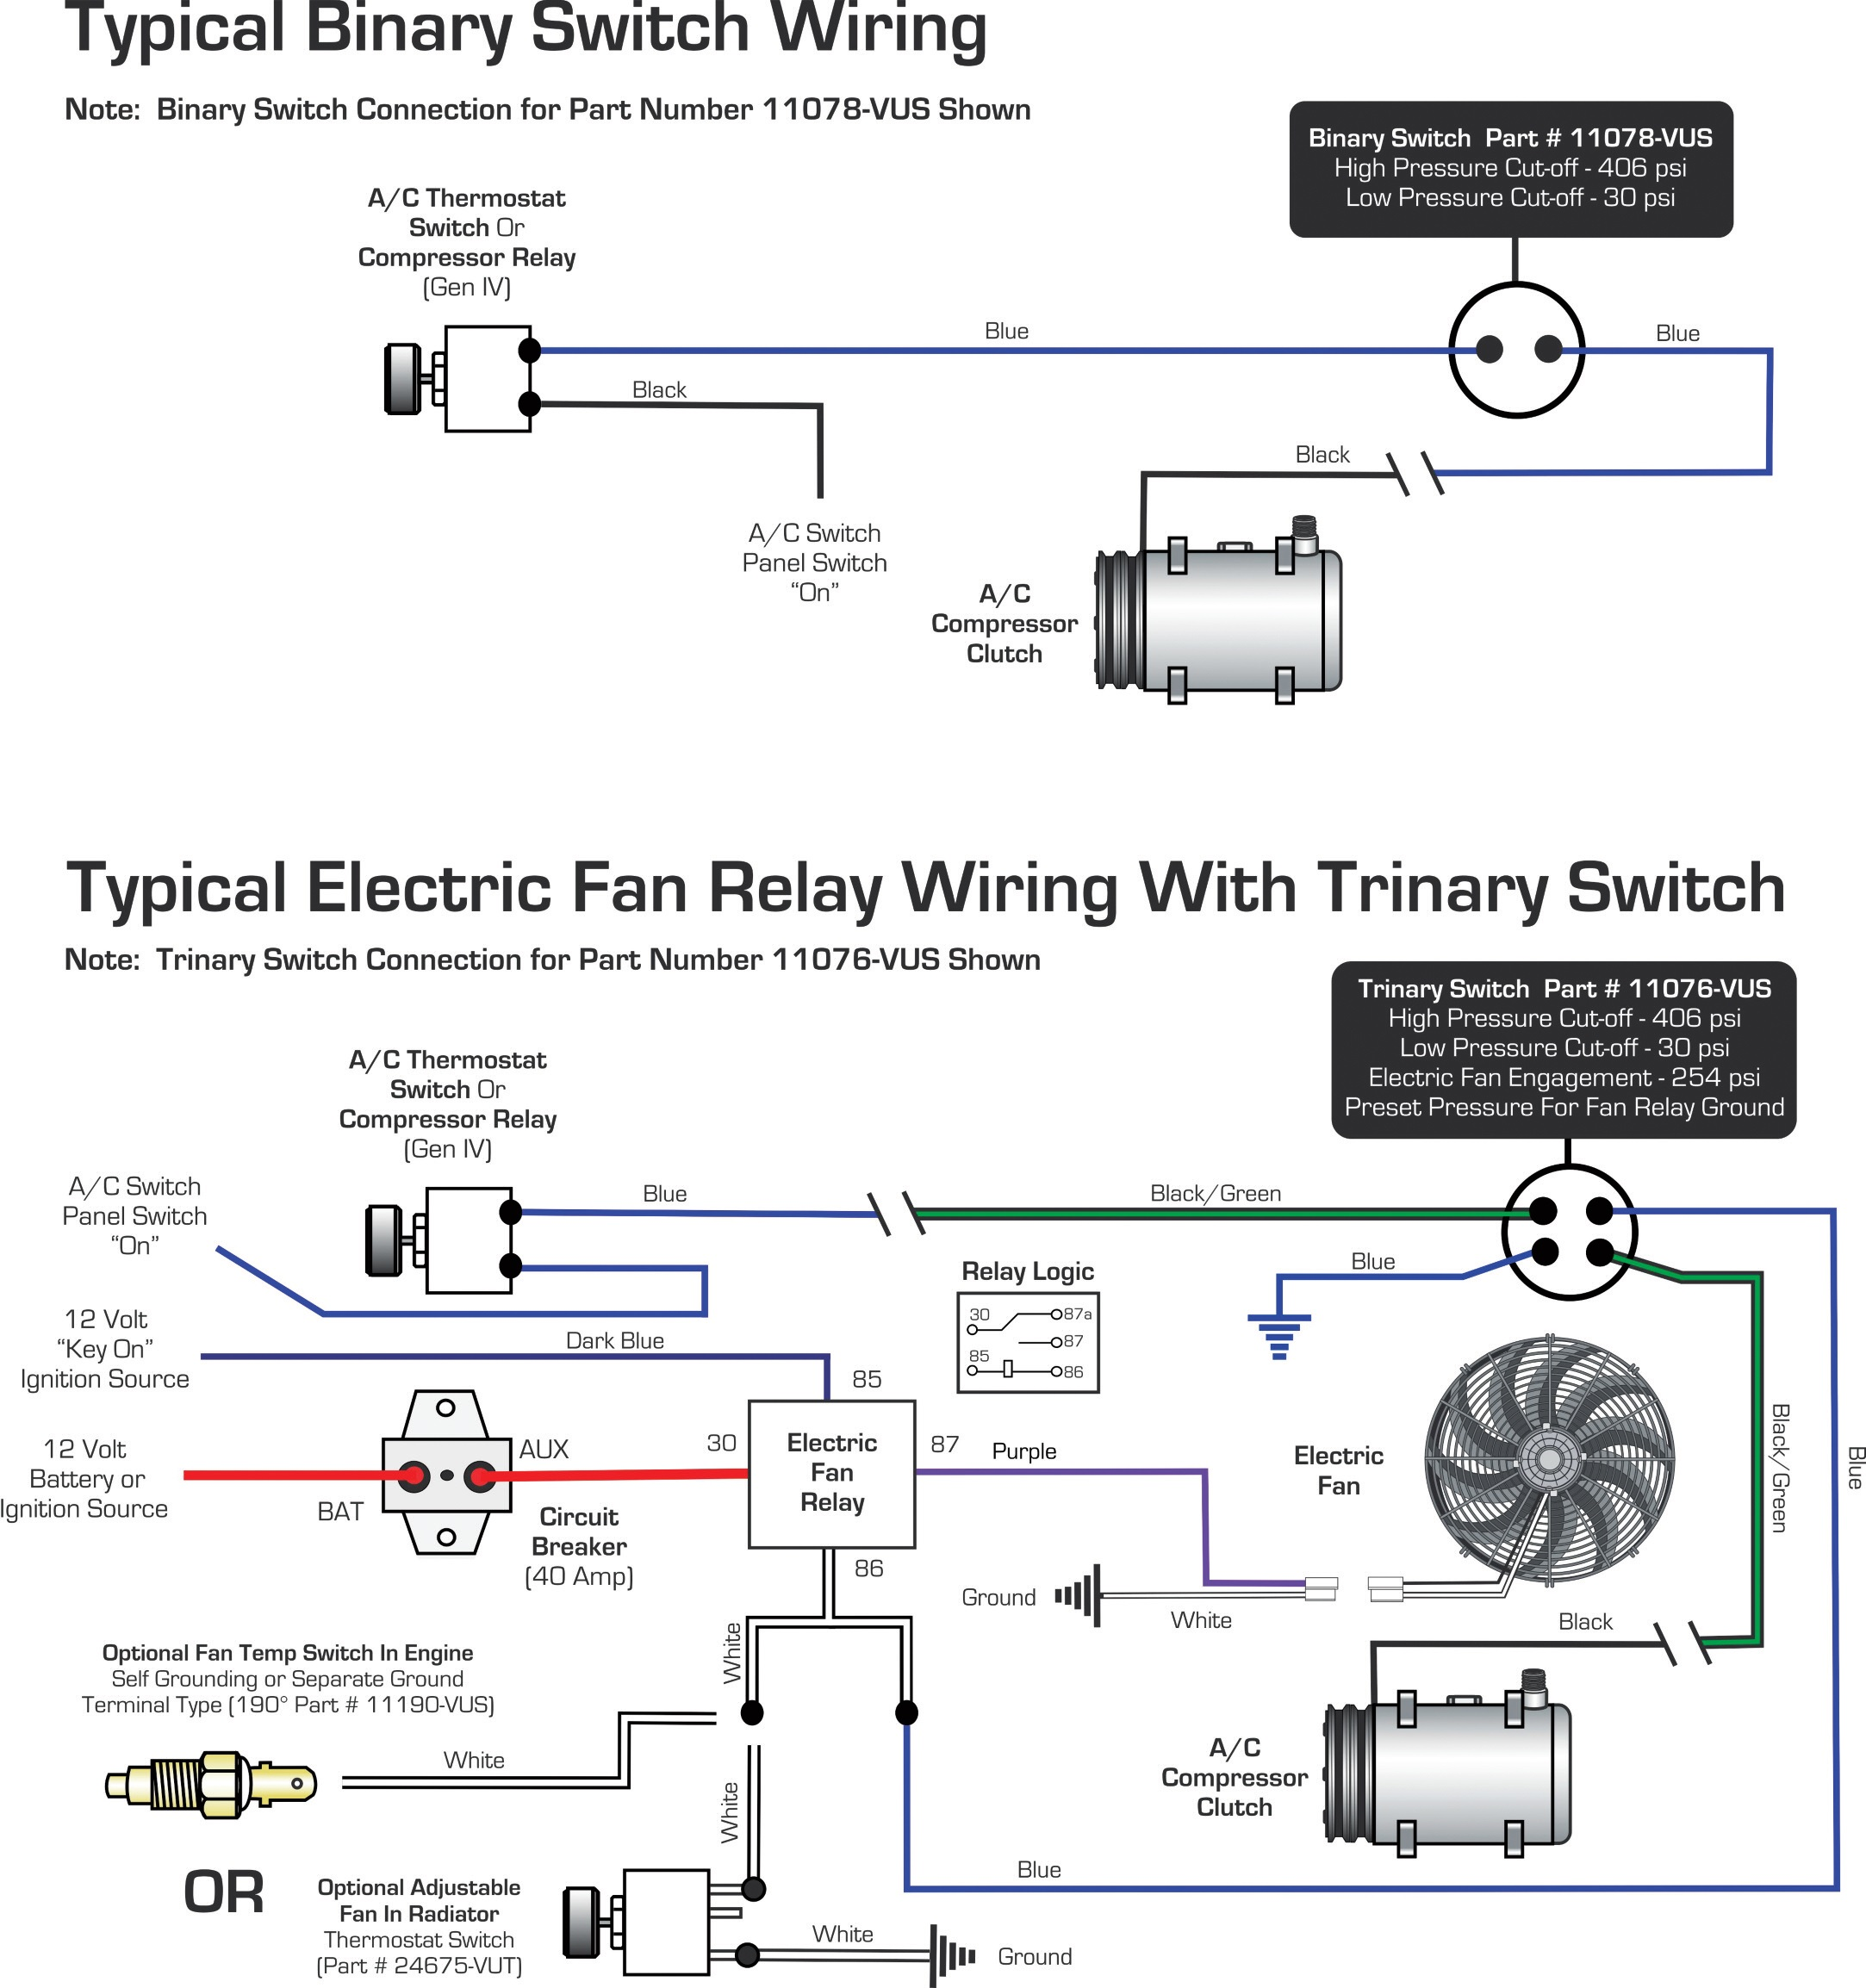 Air Switch Wiring Diagram Wiring Diagram Schematics